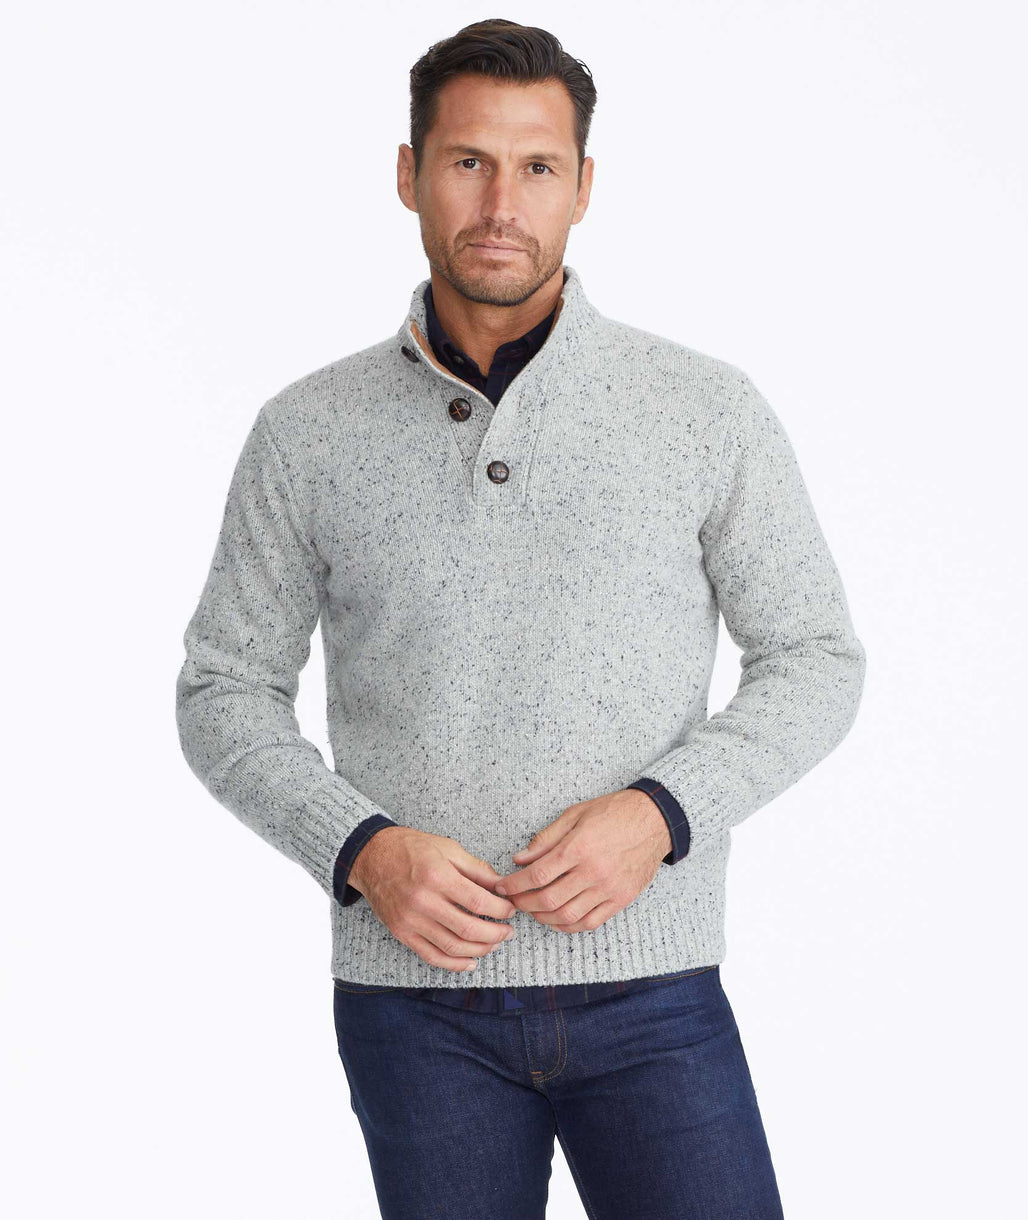 Model wearing a Grey Button-Neck Donegal Sweater